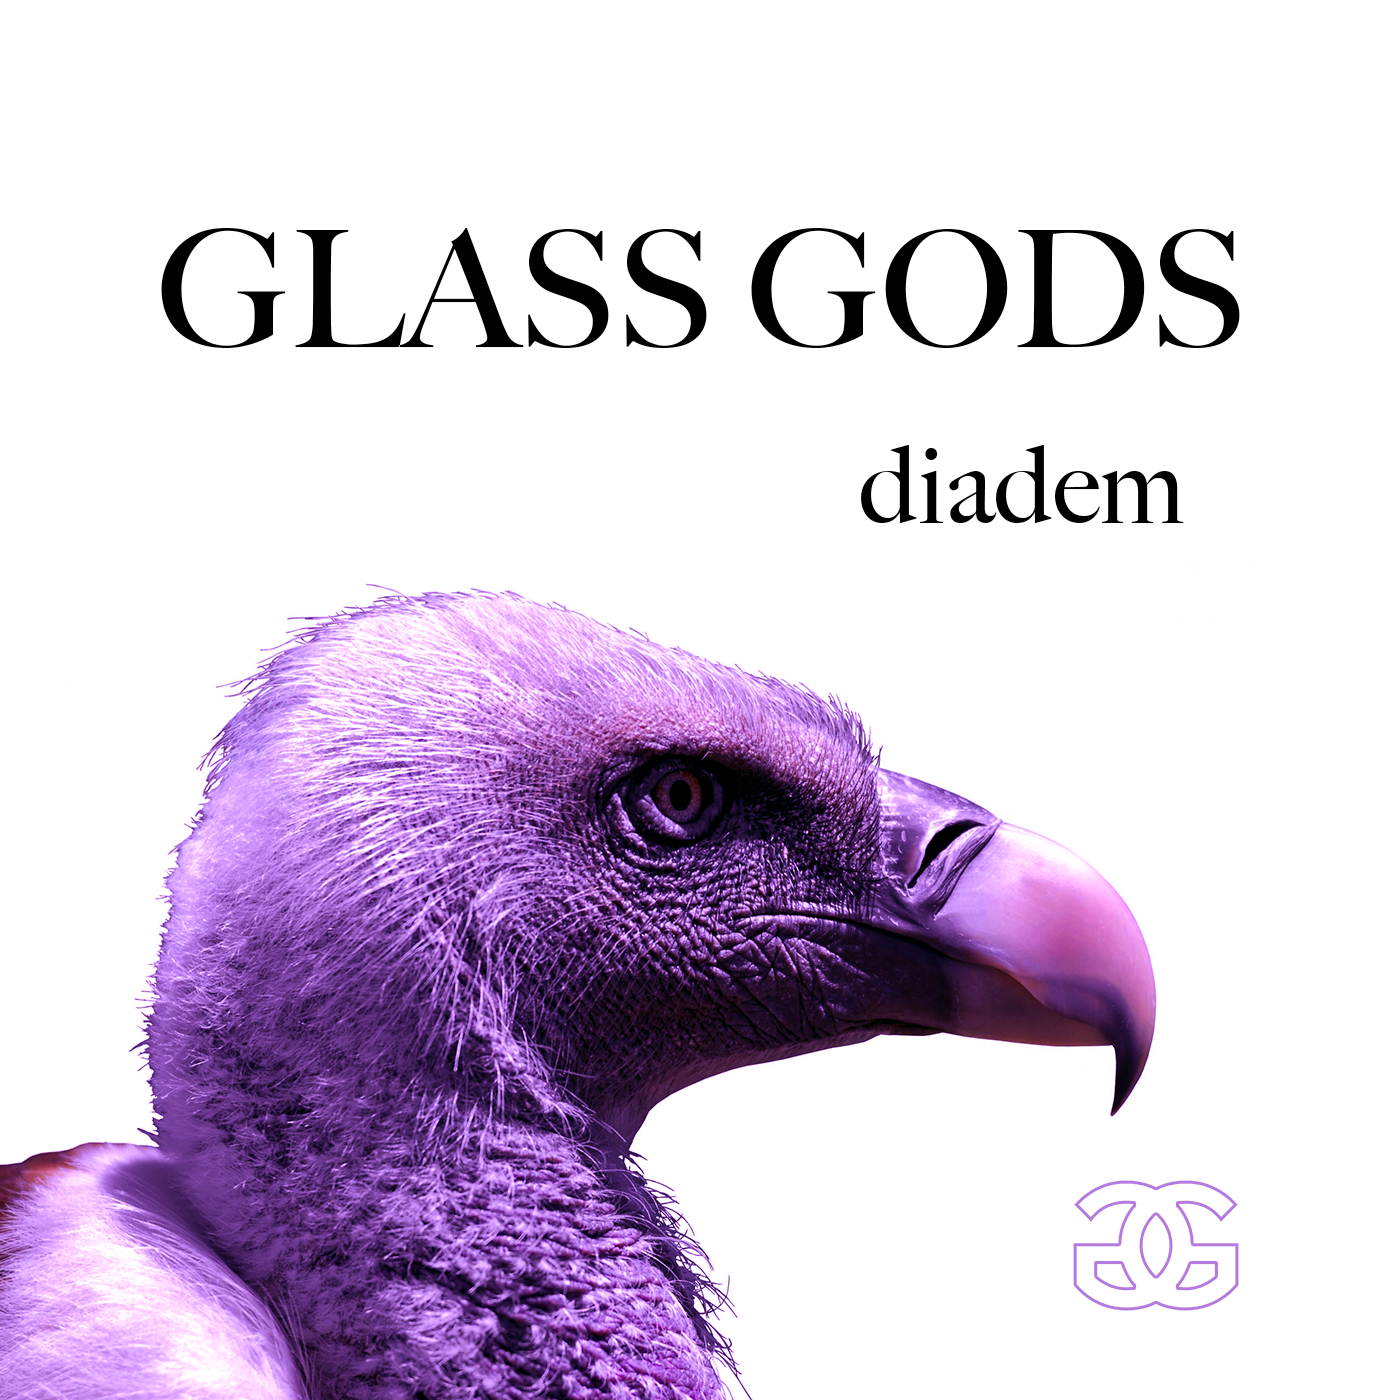 """Glass Gods - """"Diadem"""" to be released July 2017!"""